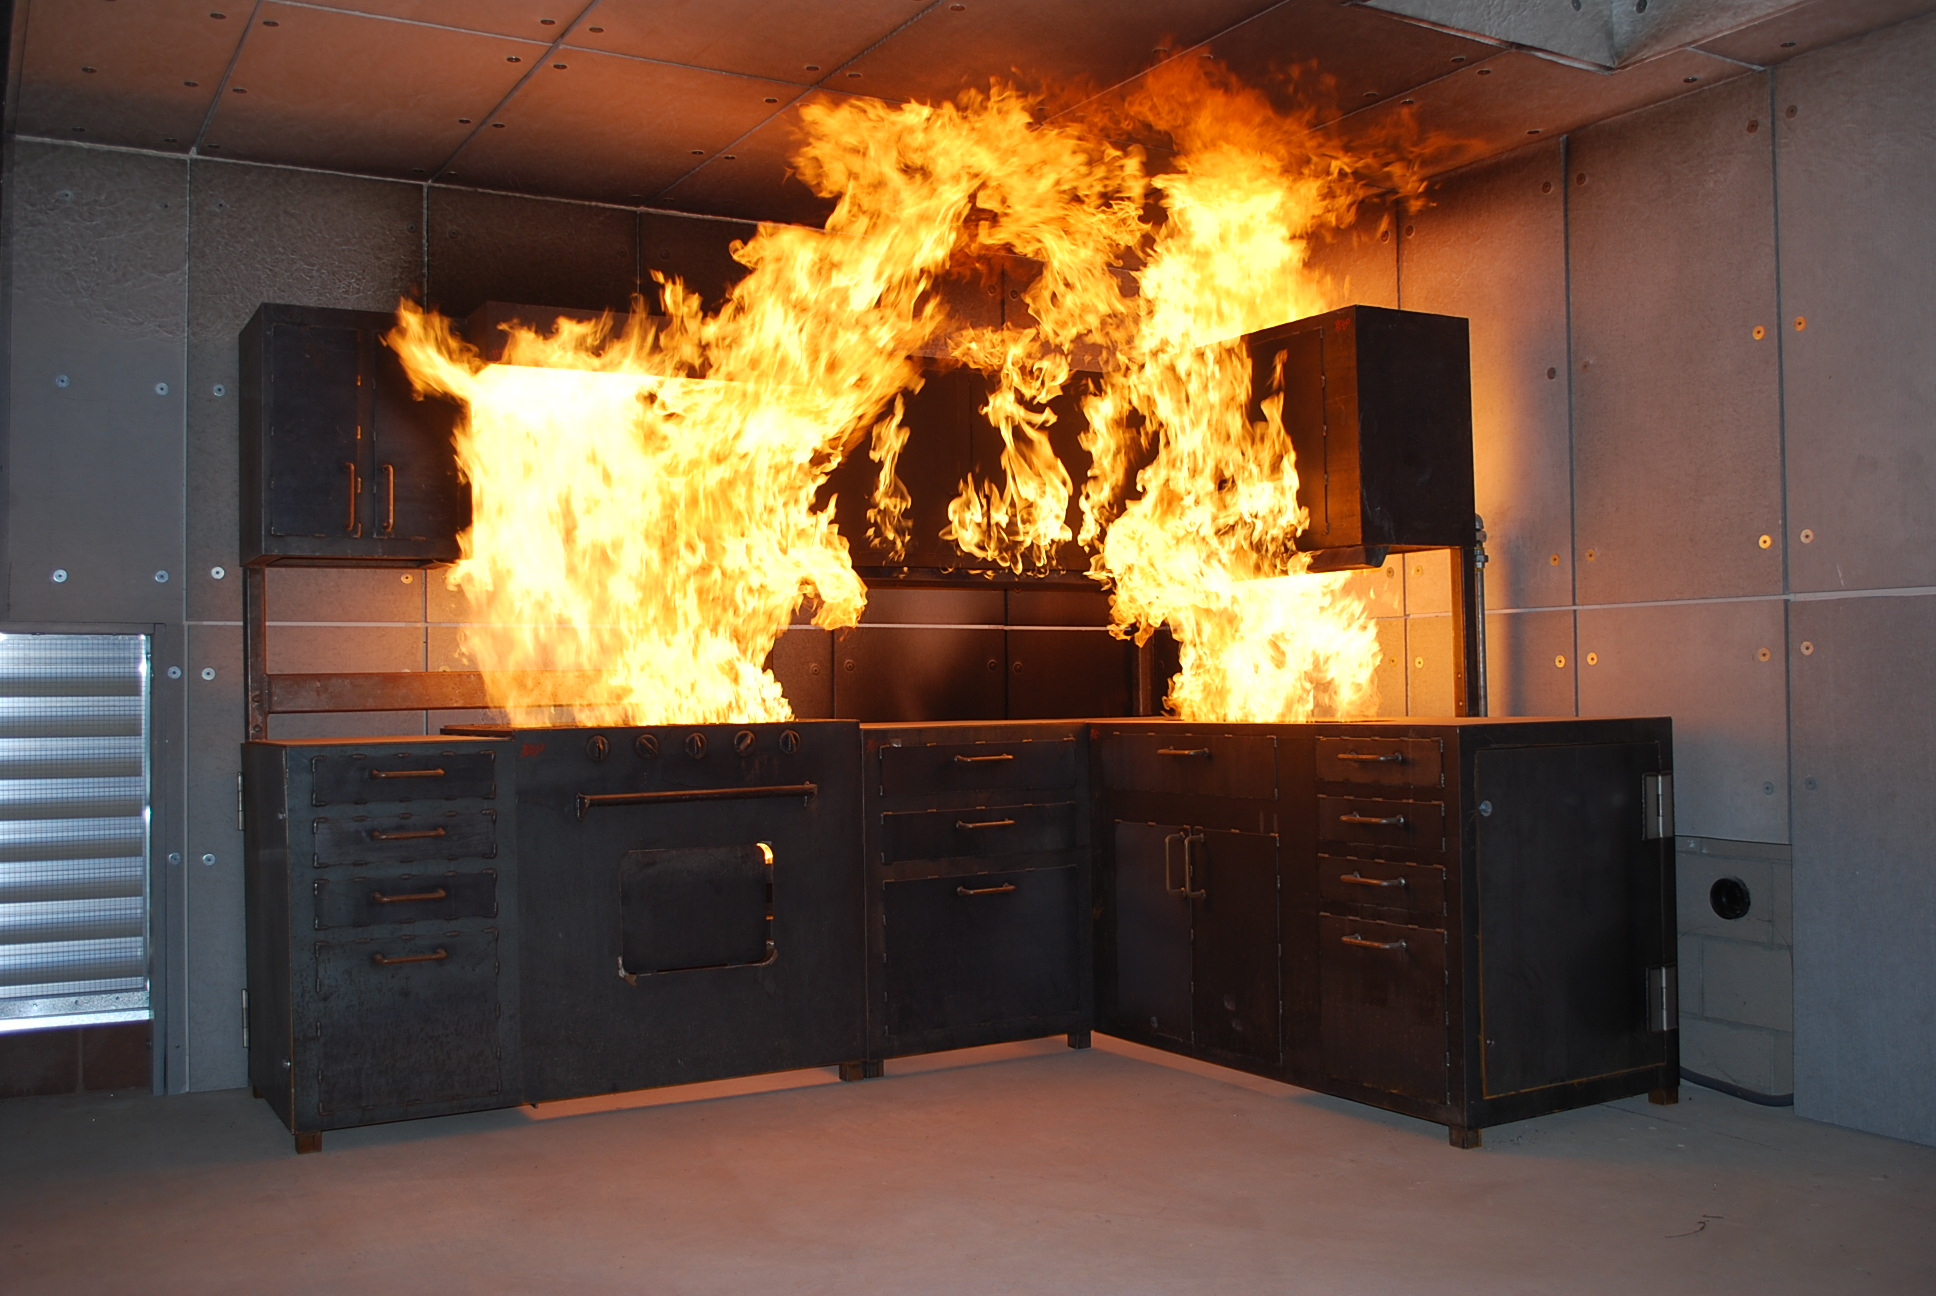 21 Fire Safety Tips for Home  Red Panic Button